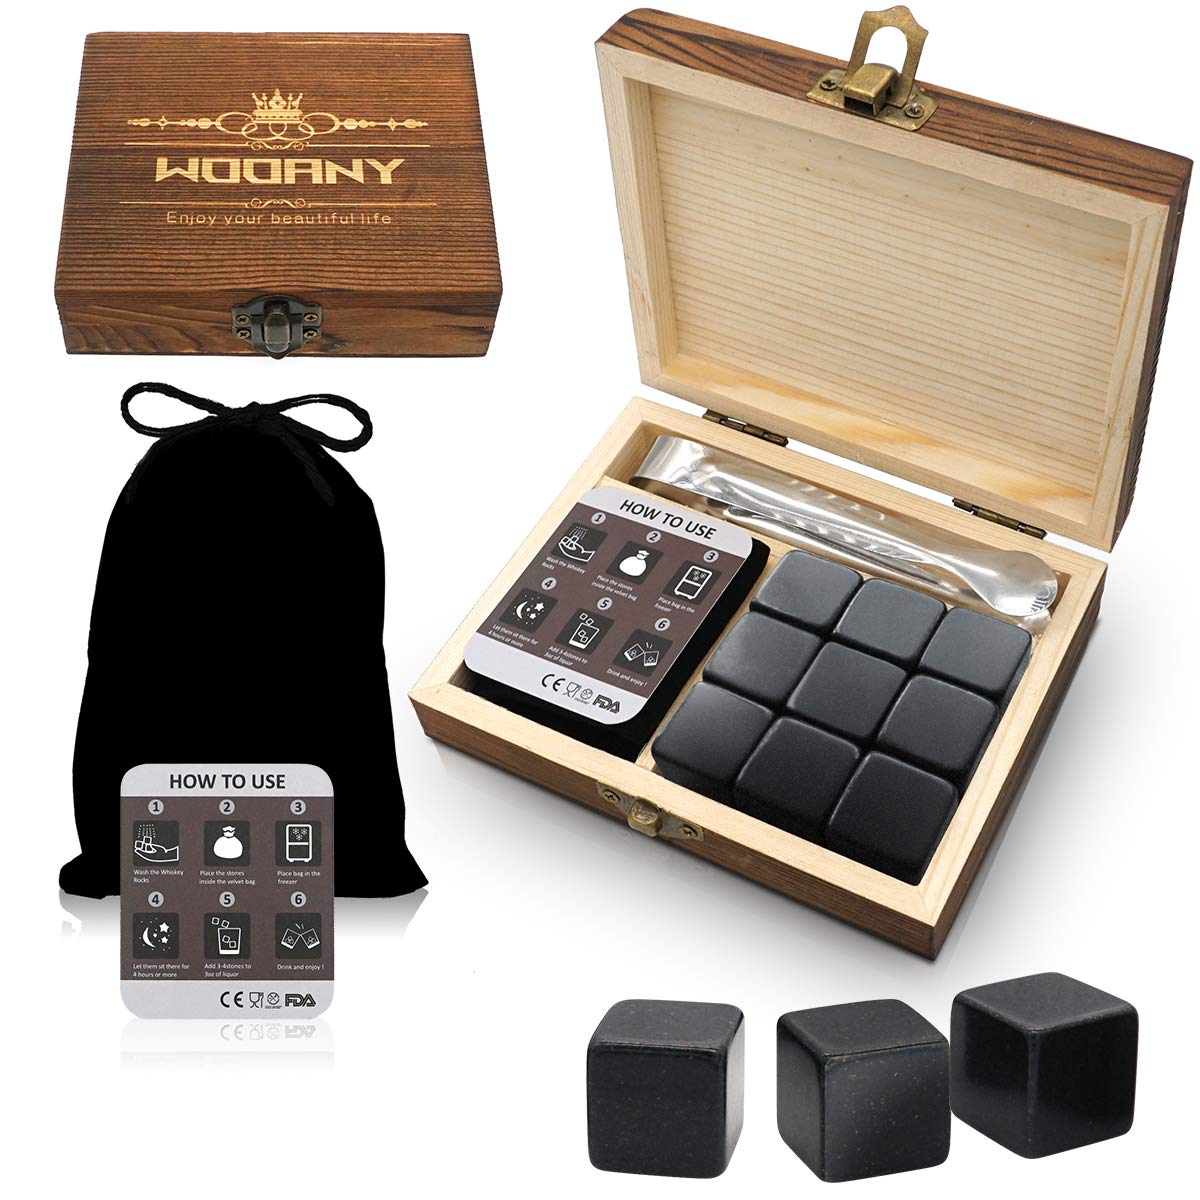 TOPLF Whiskey Stones Premium Set, 9 Granite Whiskey Chilling Stones(Chilling Rocks) - Gift Ideal for Bourbon Scotch Jameson Whiskey Lover With Velvet Pouch and Tong(100% Pure Soapstones)